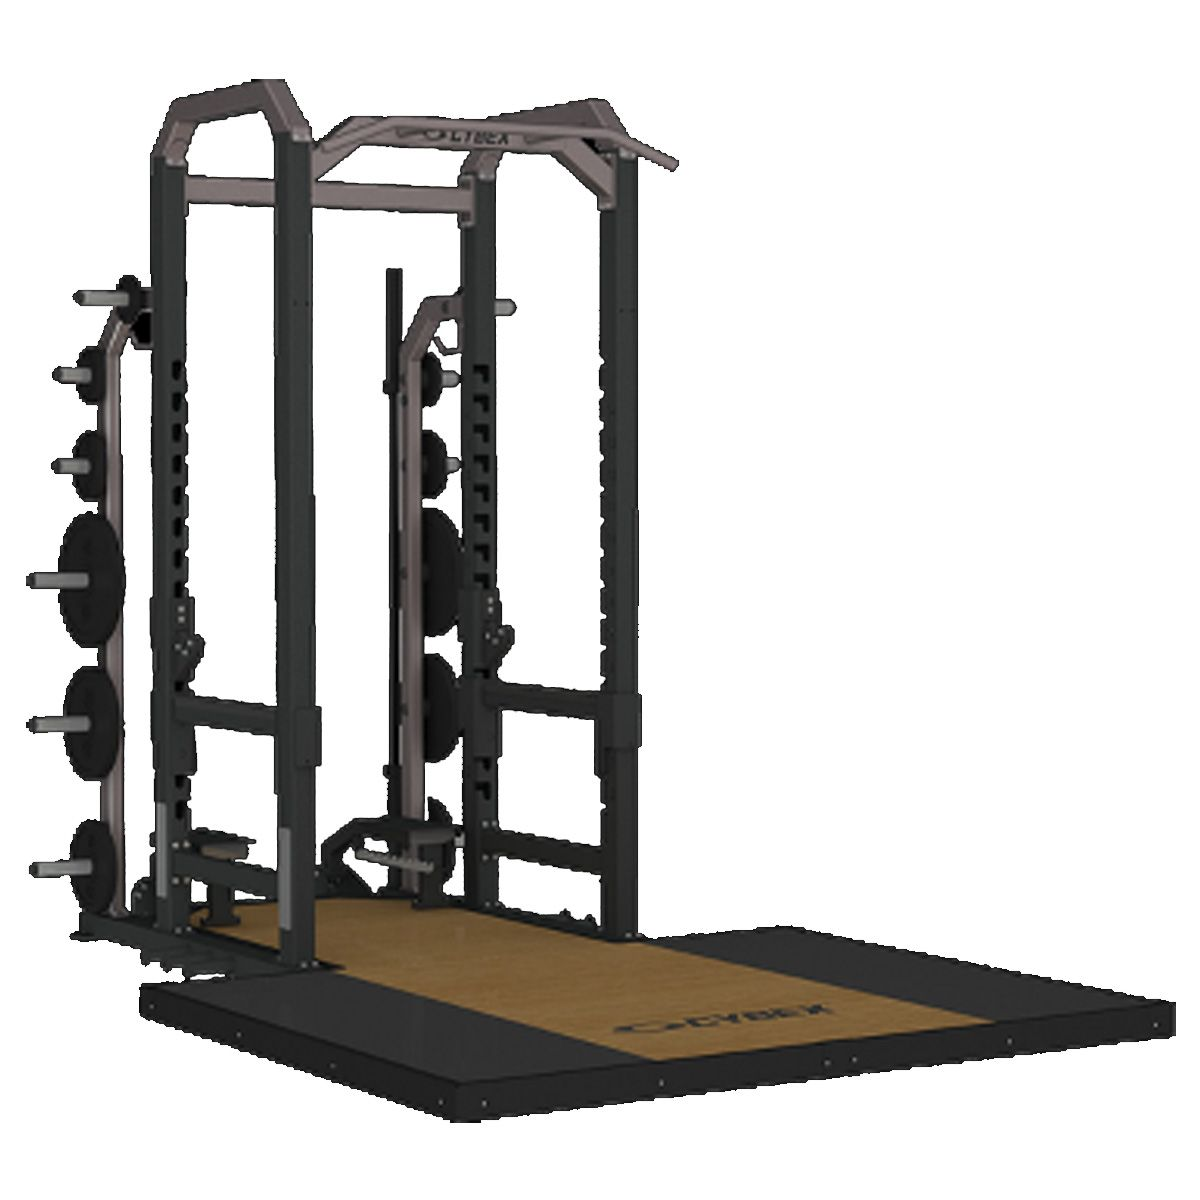 pro category freemotion racks fitnesszone rack cage power weider